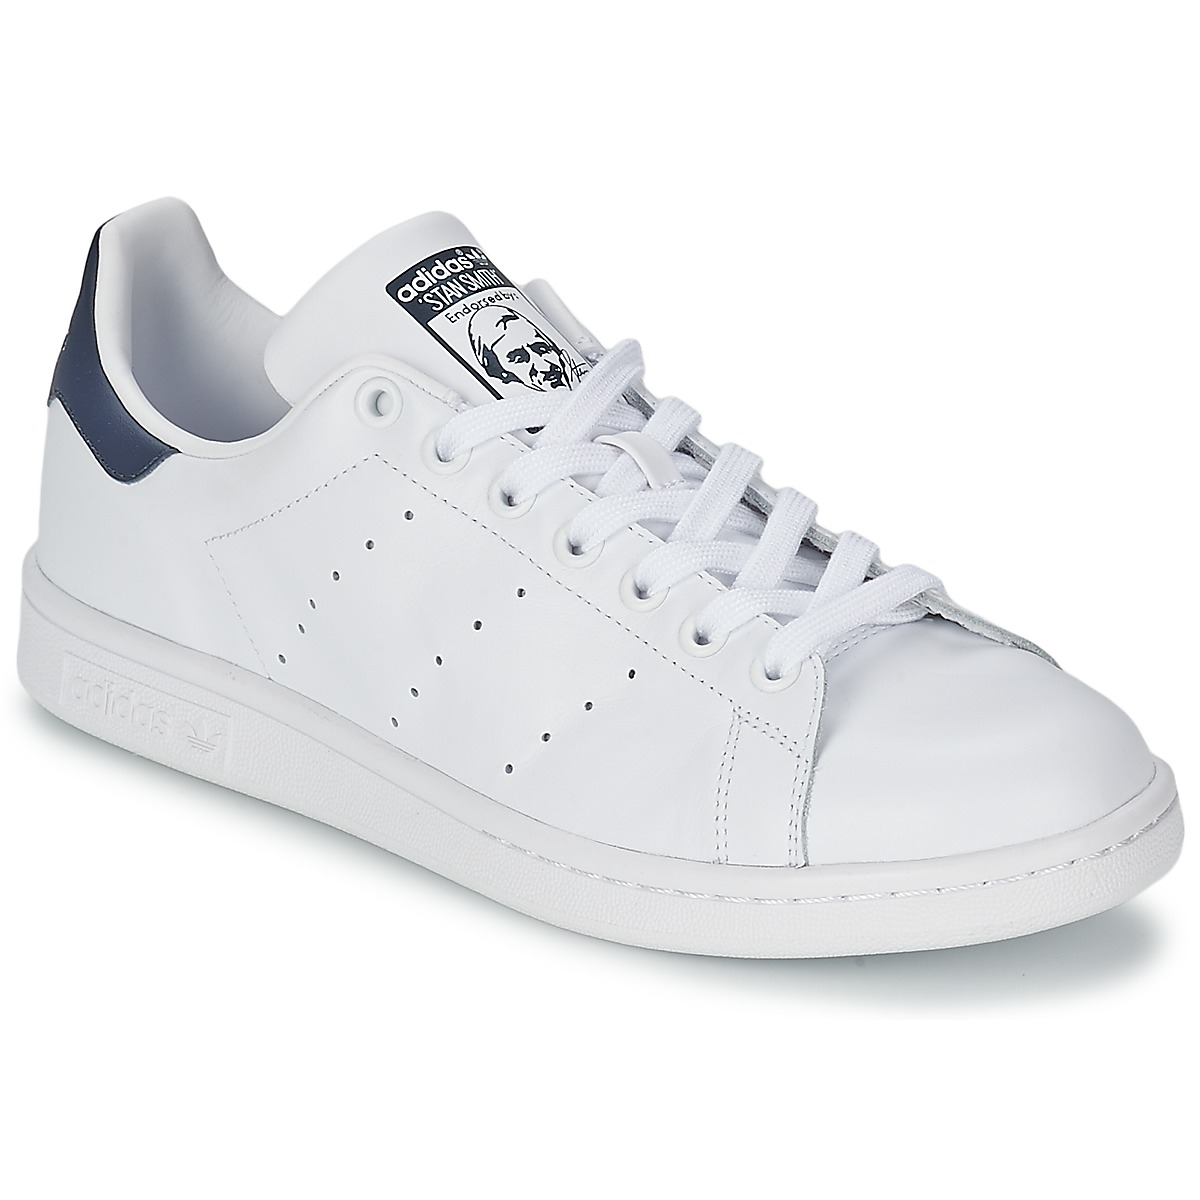 7333d28d07f adidas Originals STAN SMITH White   Blue - Fast delivery with ...